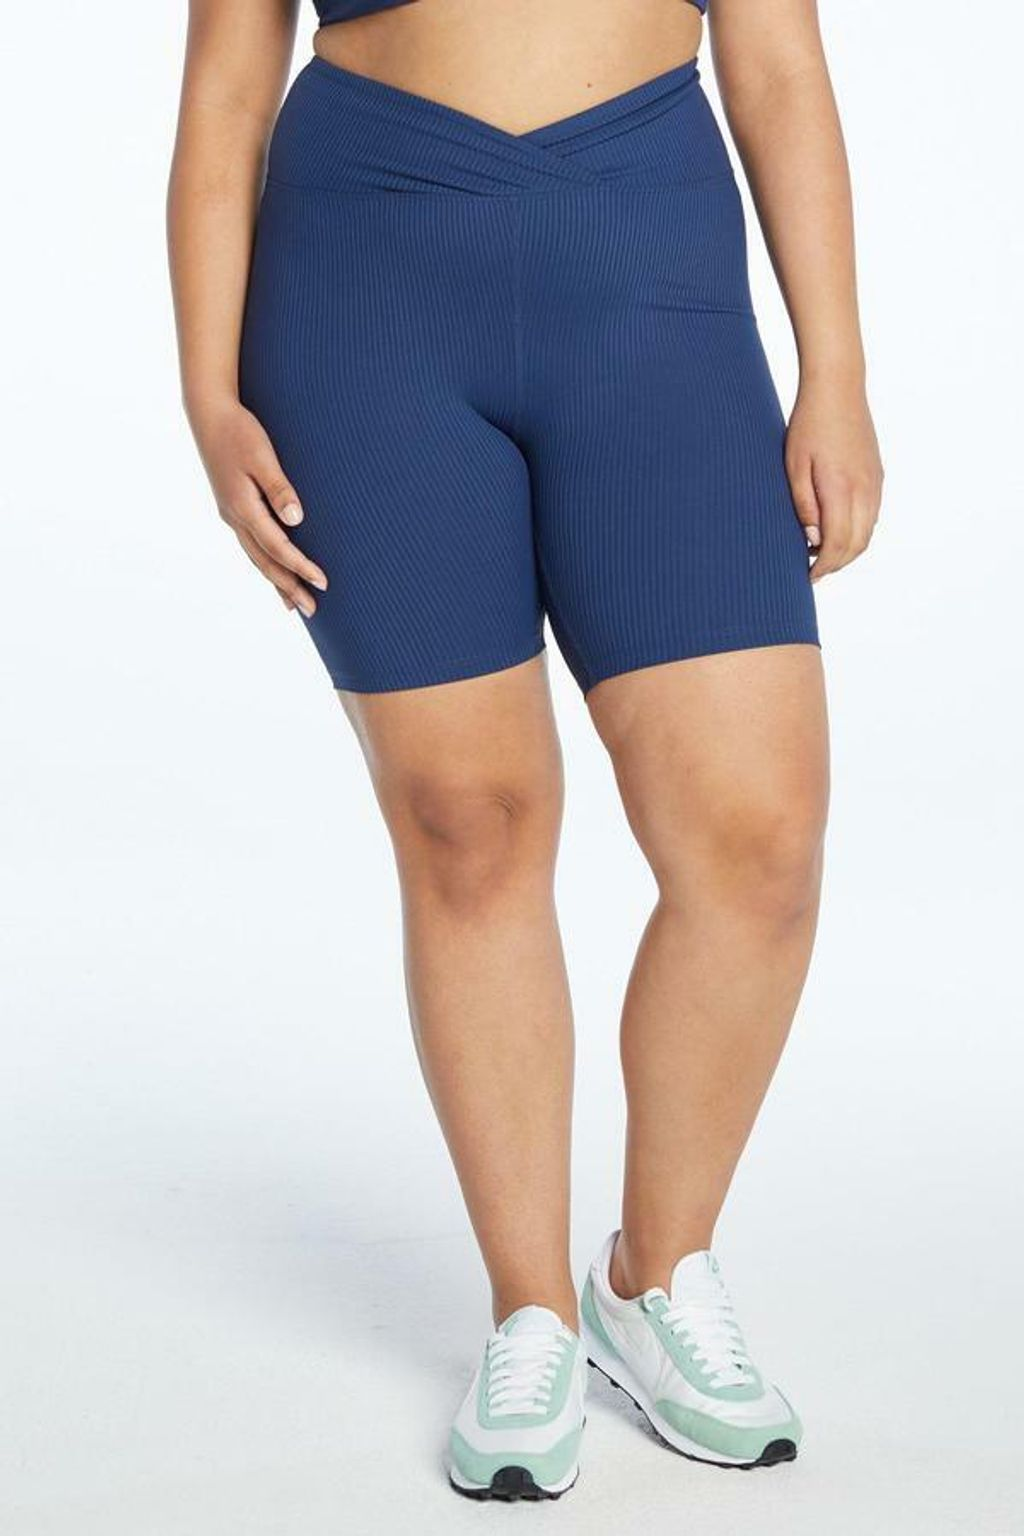 Ribbed-V-Waist-Biker-Short-Year-of-Ours-Navy-Extra-Small-3_600x.jpg